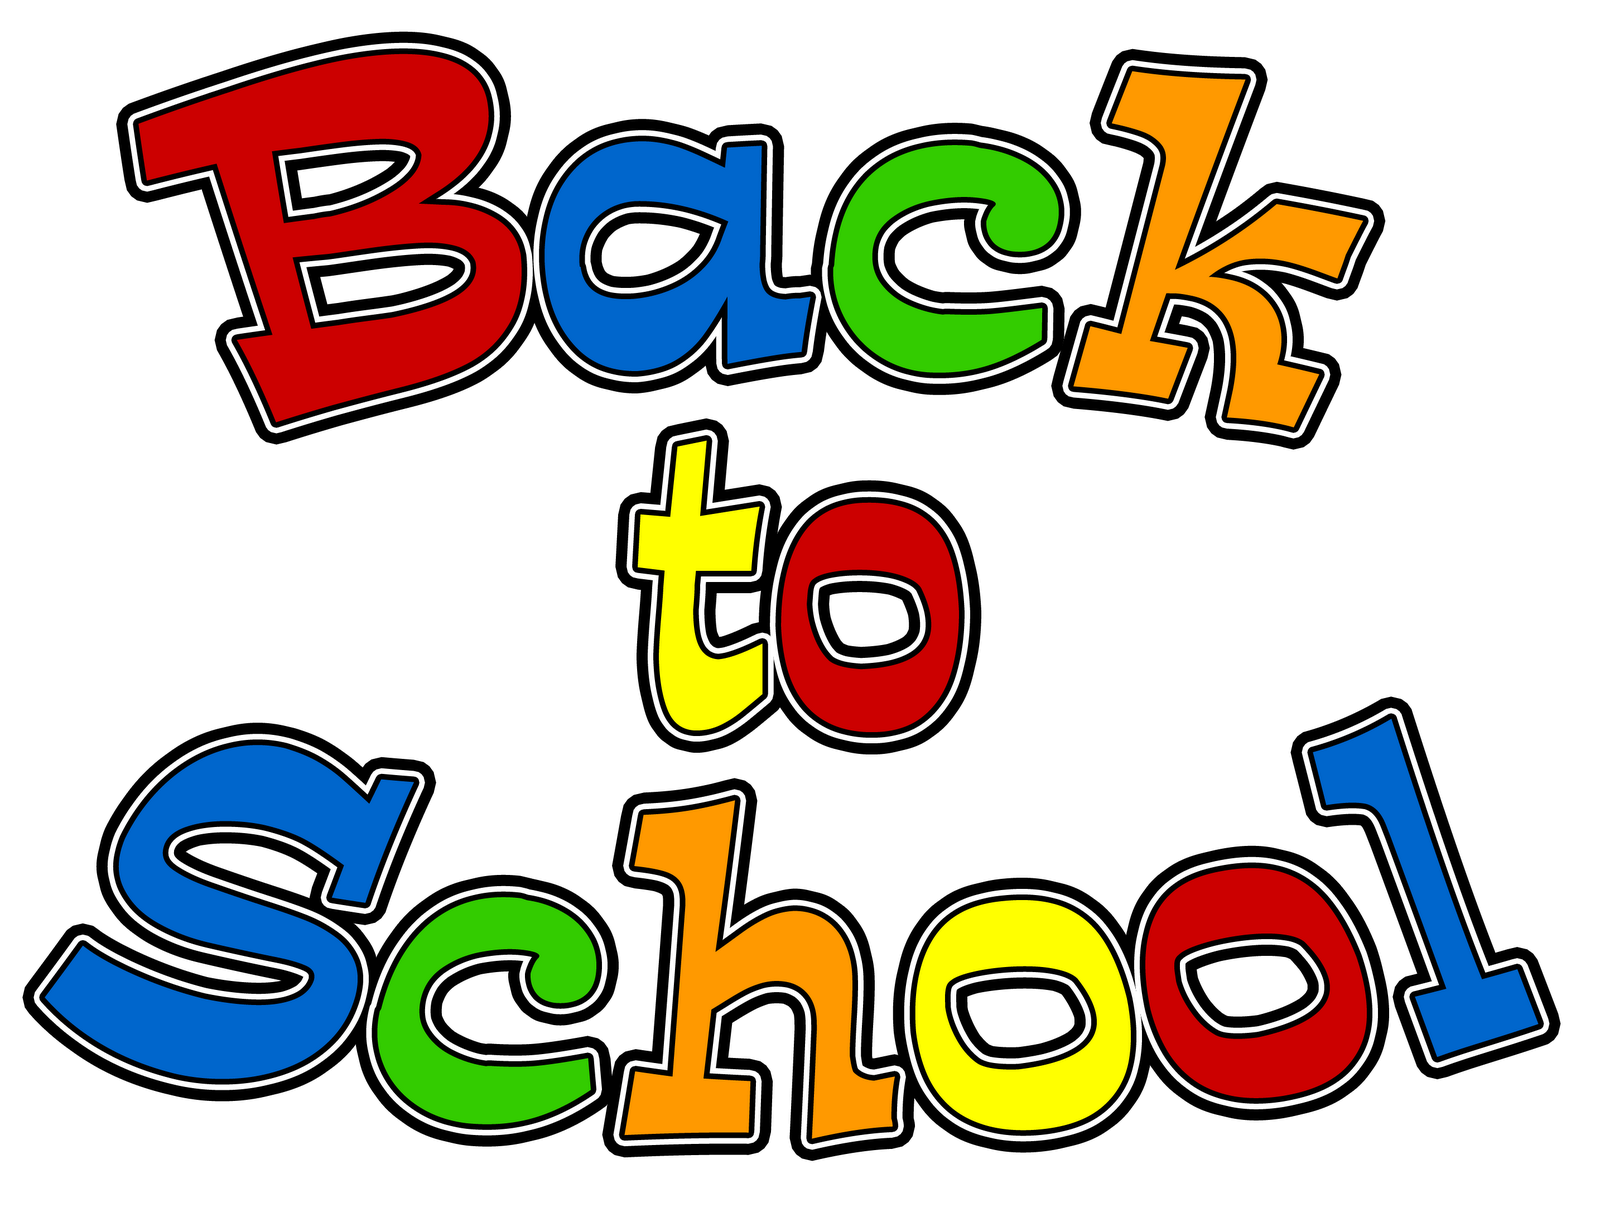 ... Back To School Images Free | Free Do-... Back To School Images Free | Free Download Clip Art | Free Clip .-3